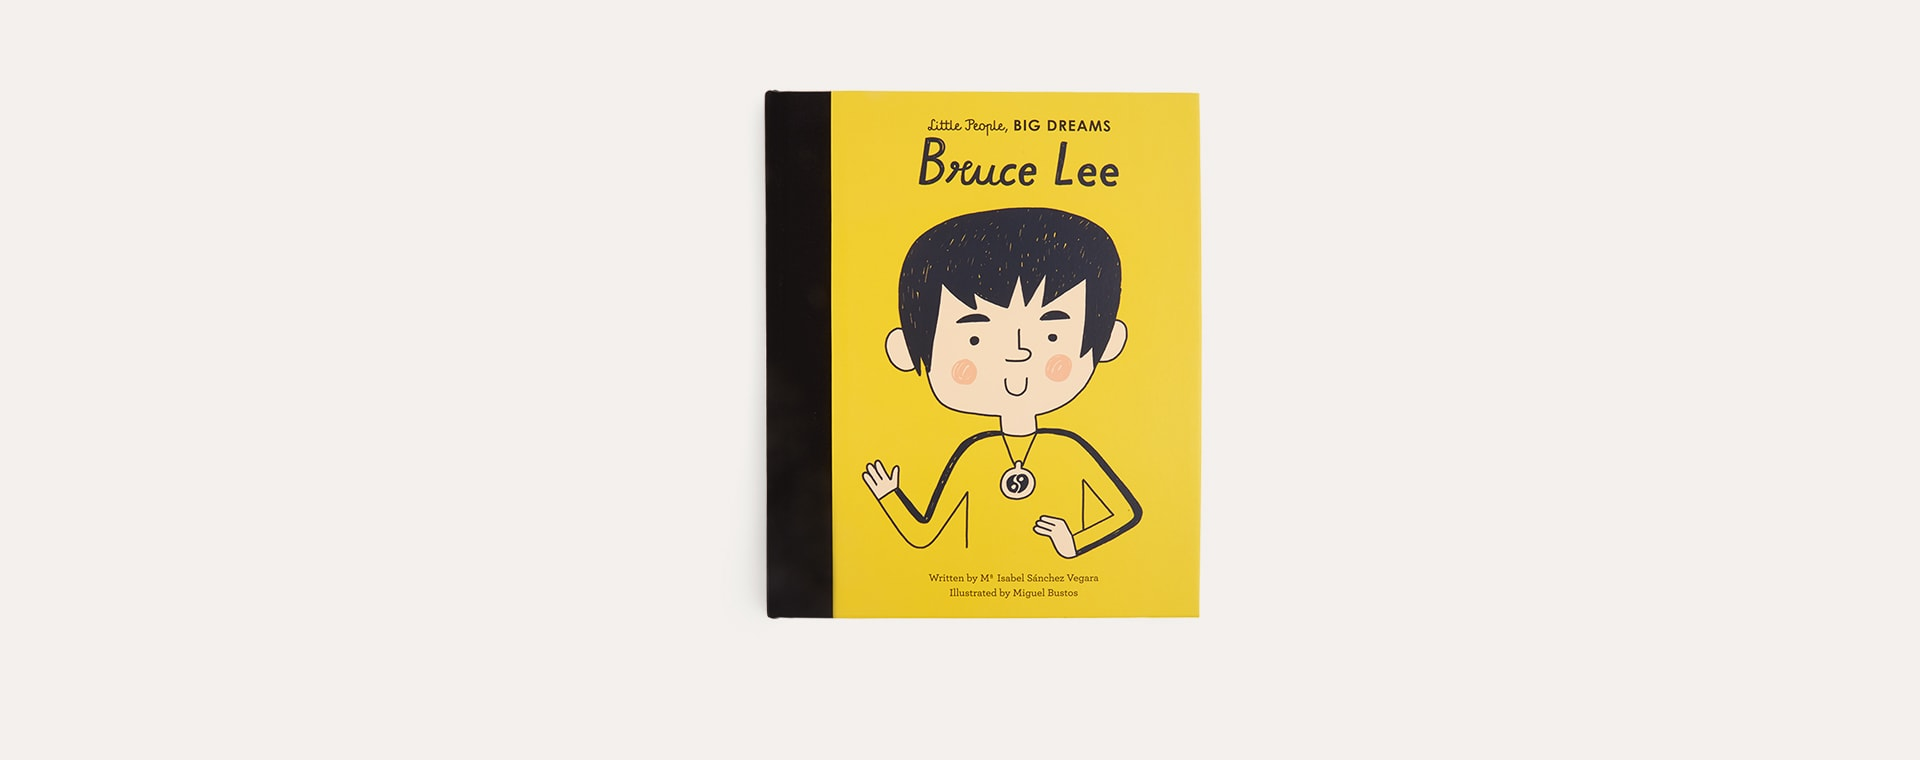 Yellow bookspeed Little People Big Dreams Bruce Lee